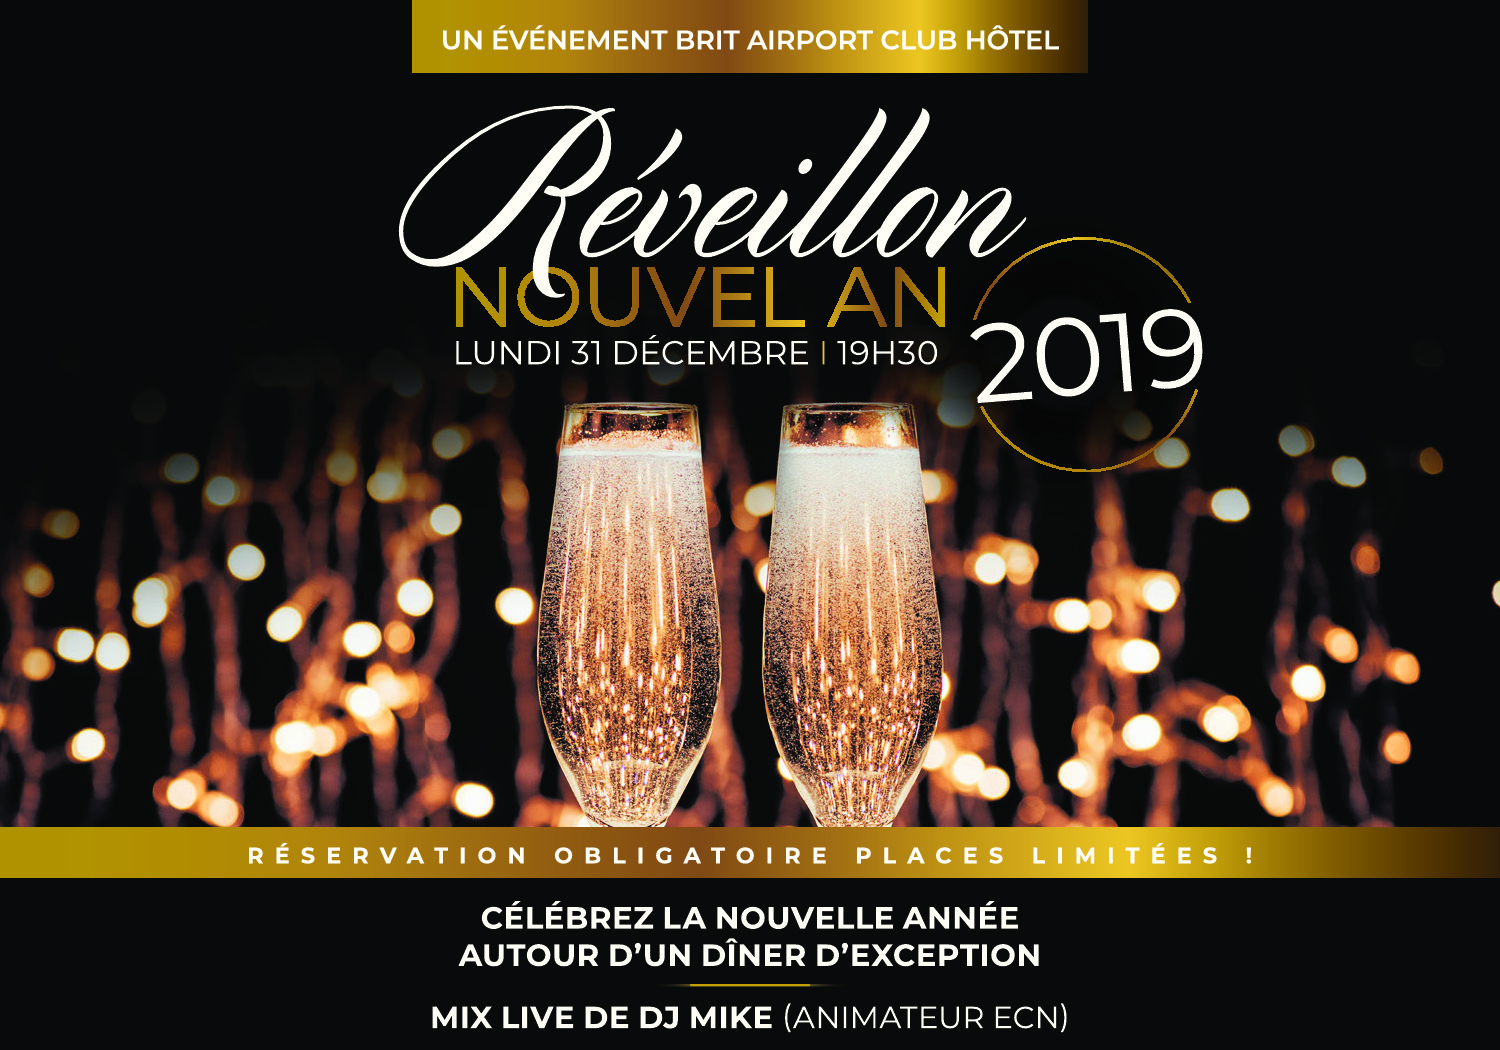 reveillon nouvel an 2019